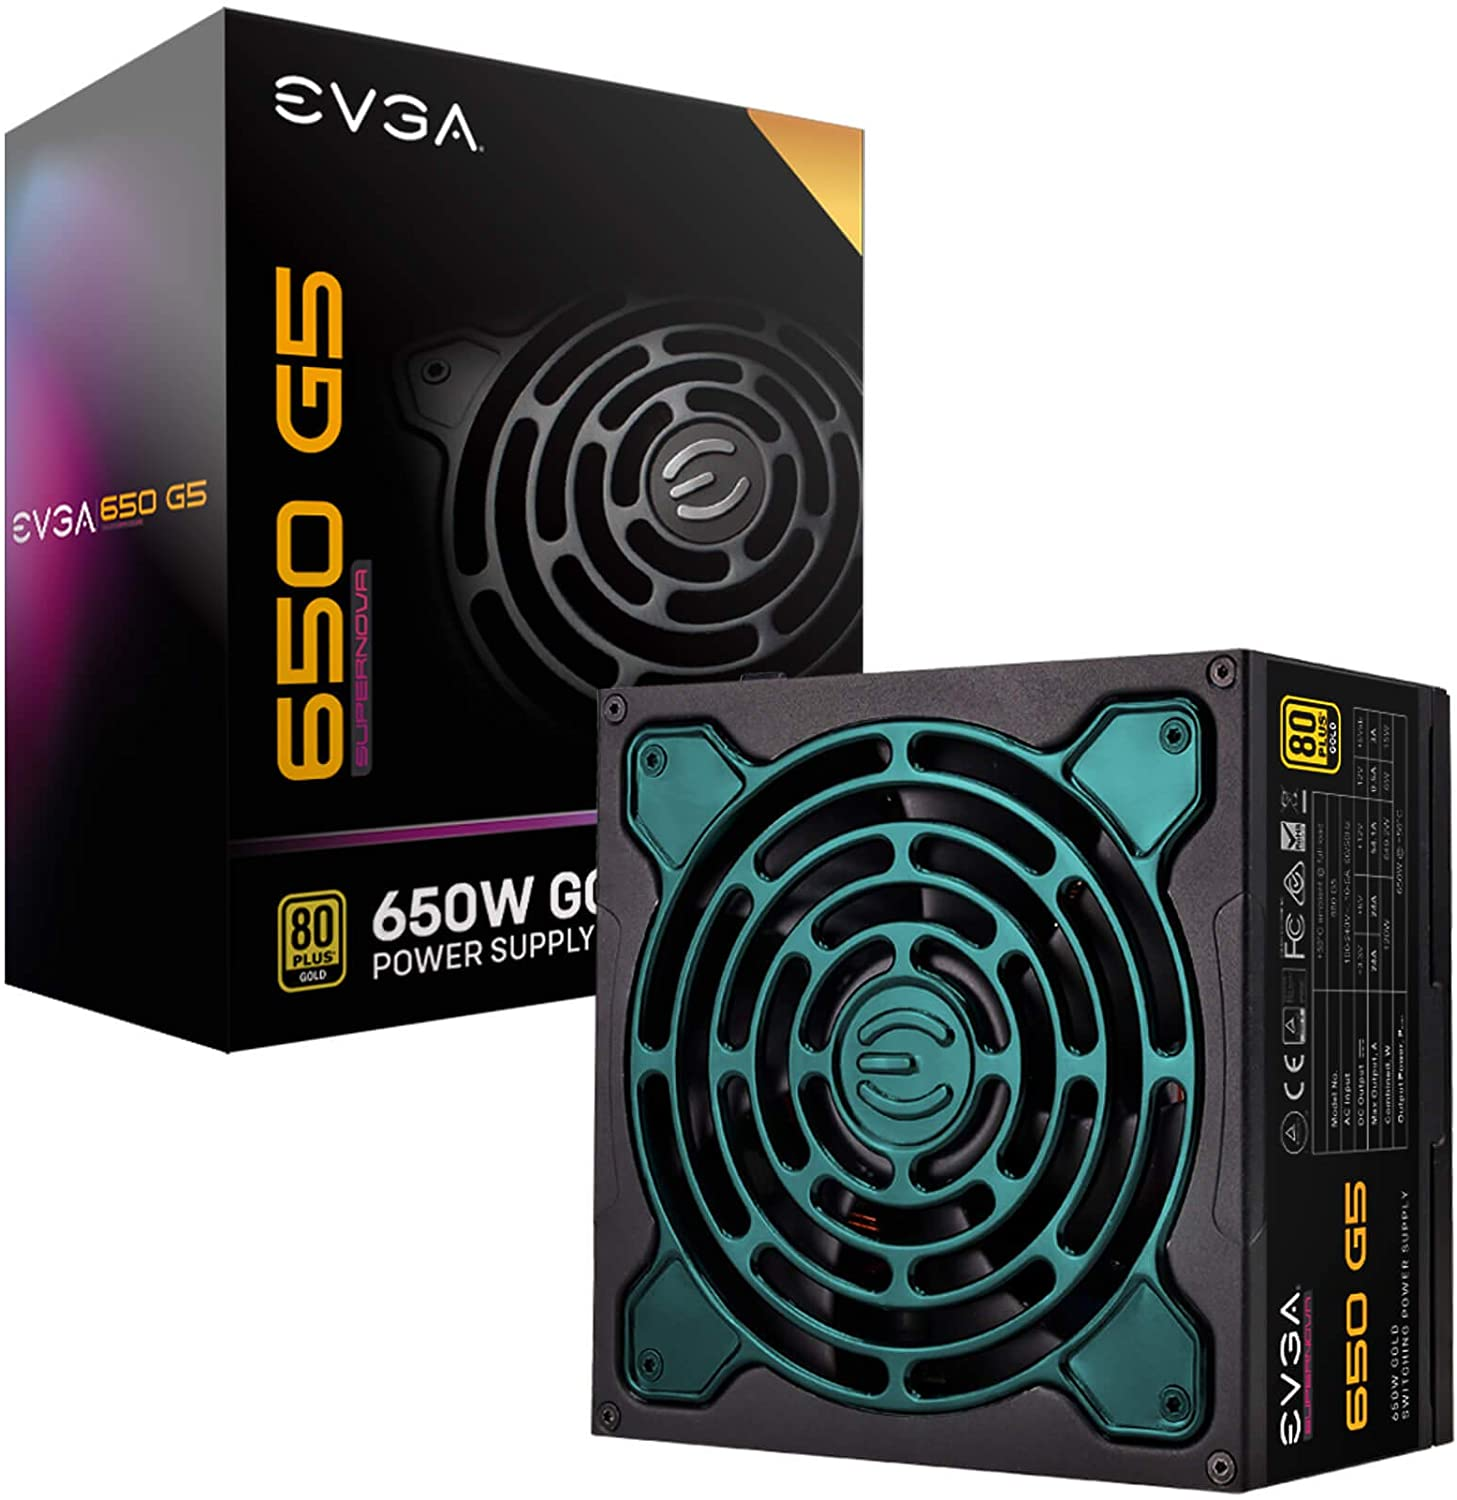 EVGA Supernova 650 G5, 80 Plus Gold 650W, Fully Modular, ECO Mode with Fdb Fan, 10 Year Warranty, Compact 150mm Size, Power Supply 220-G5-0650-X1